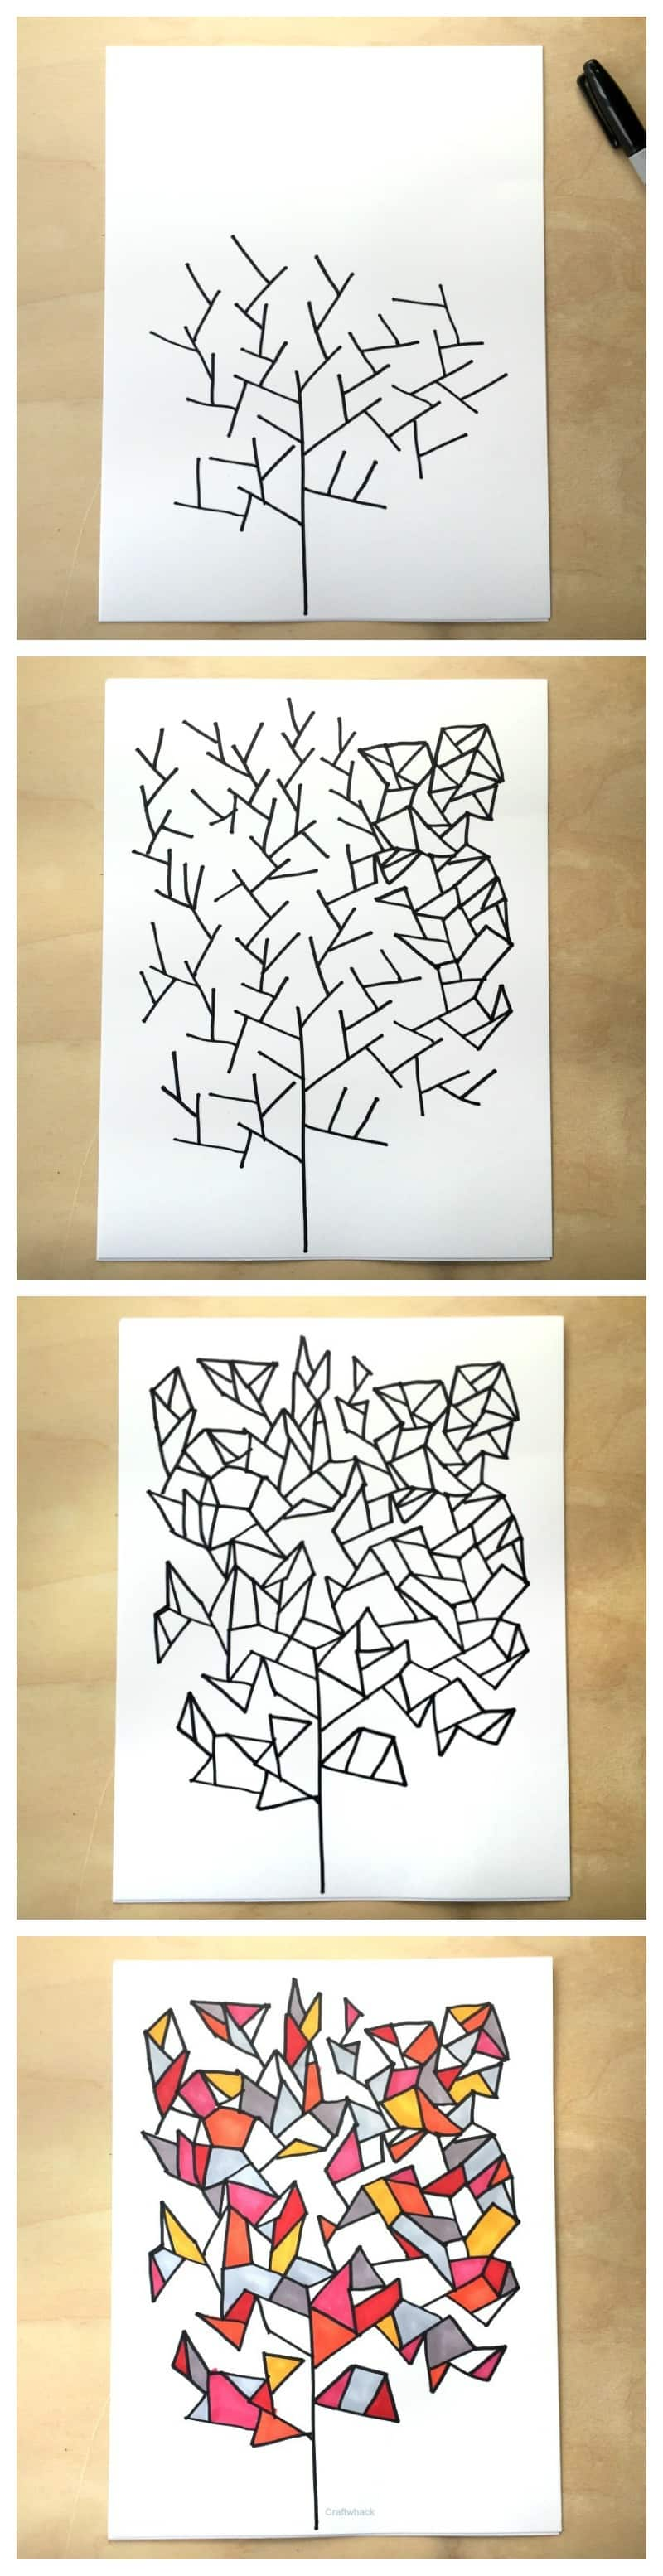 drawing games on paper From My Book 1 Simple Drawing Game Craftwhack